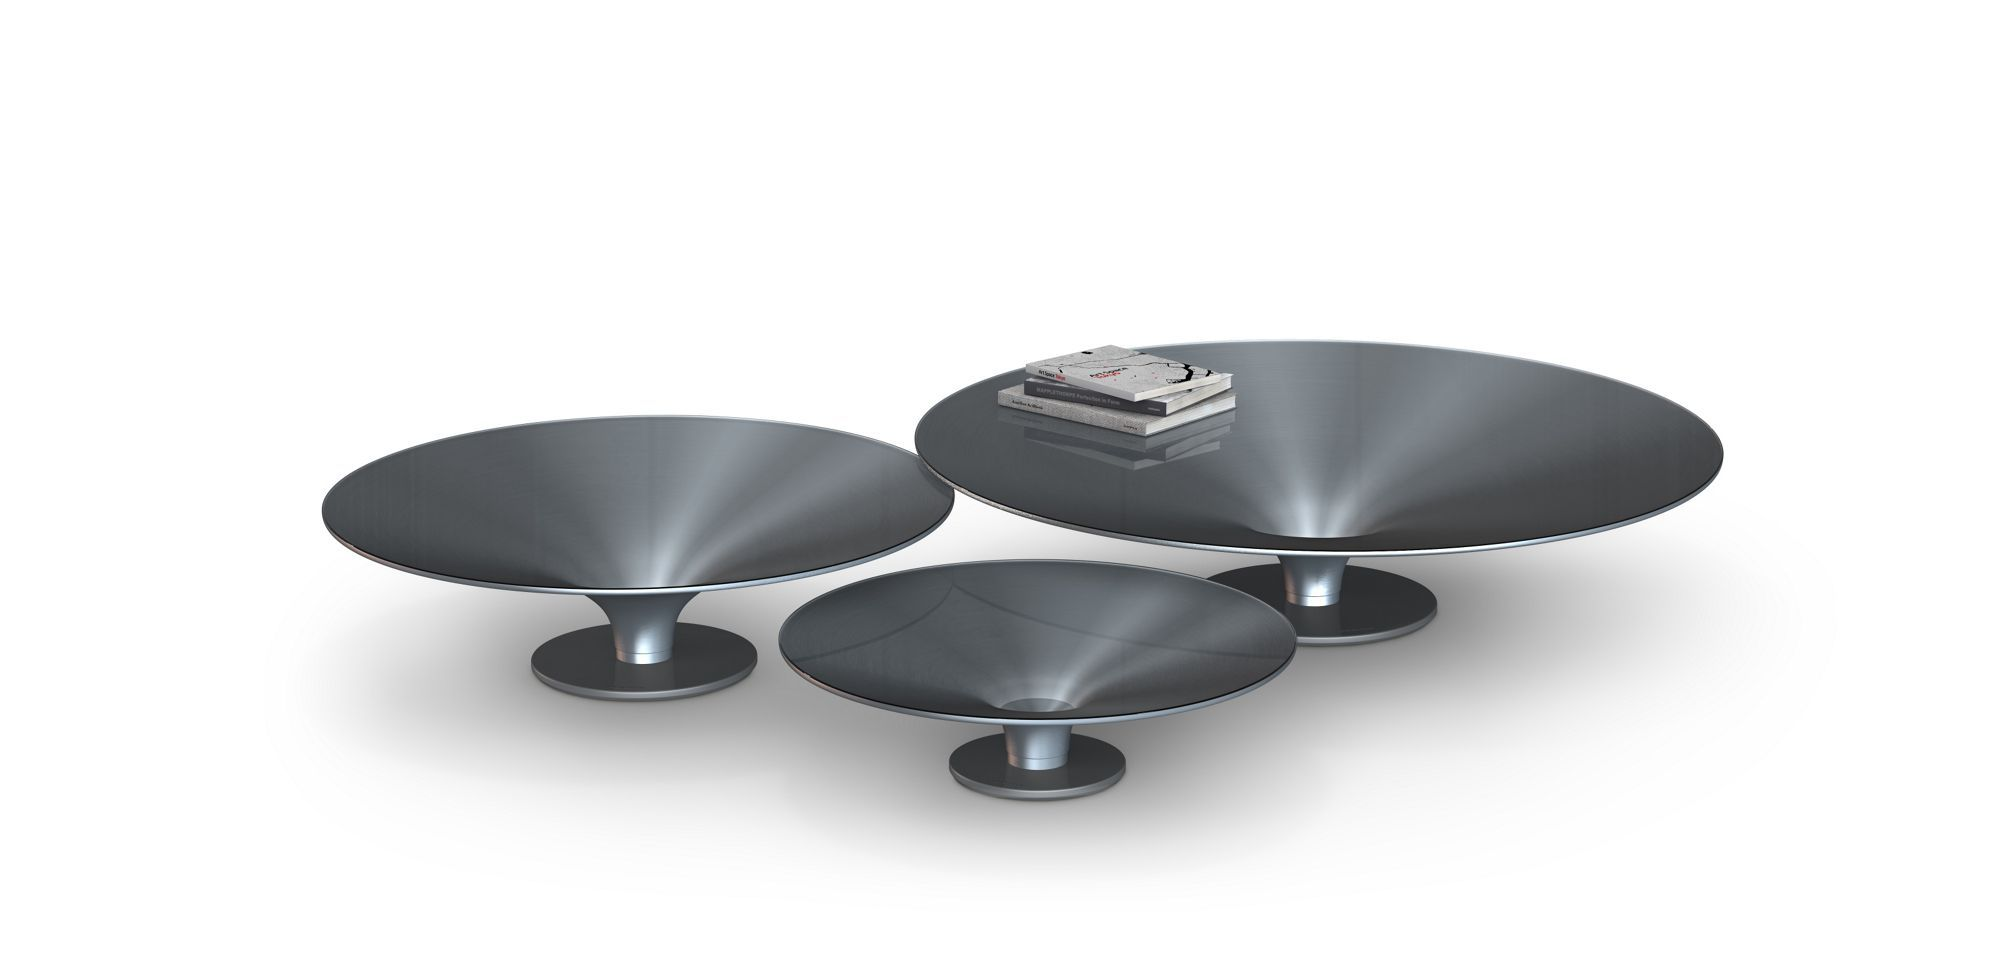 Ovni Cocktail Table Cocktail Tables Roche Bobois Cocktail Tables Coffee Table Table